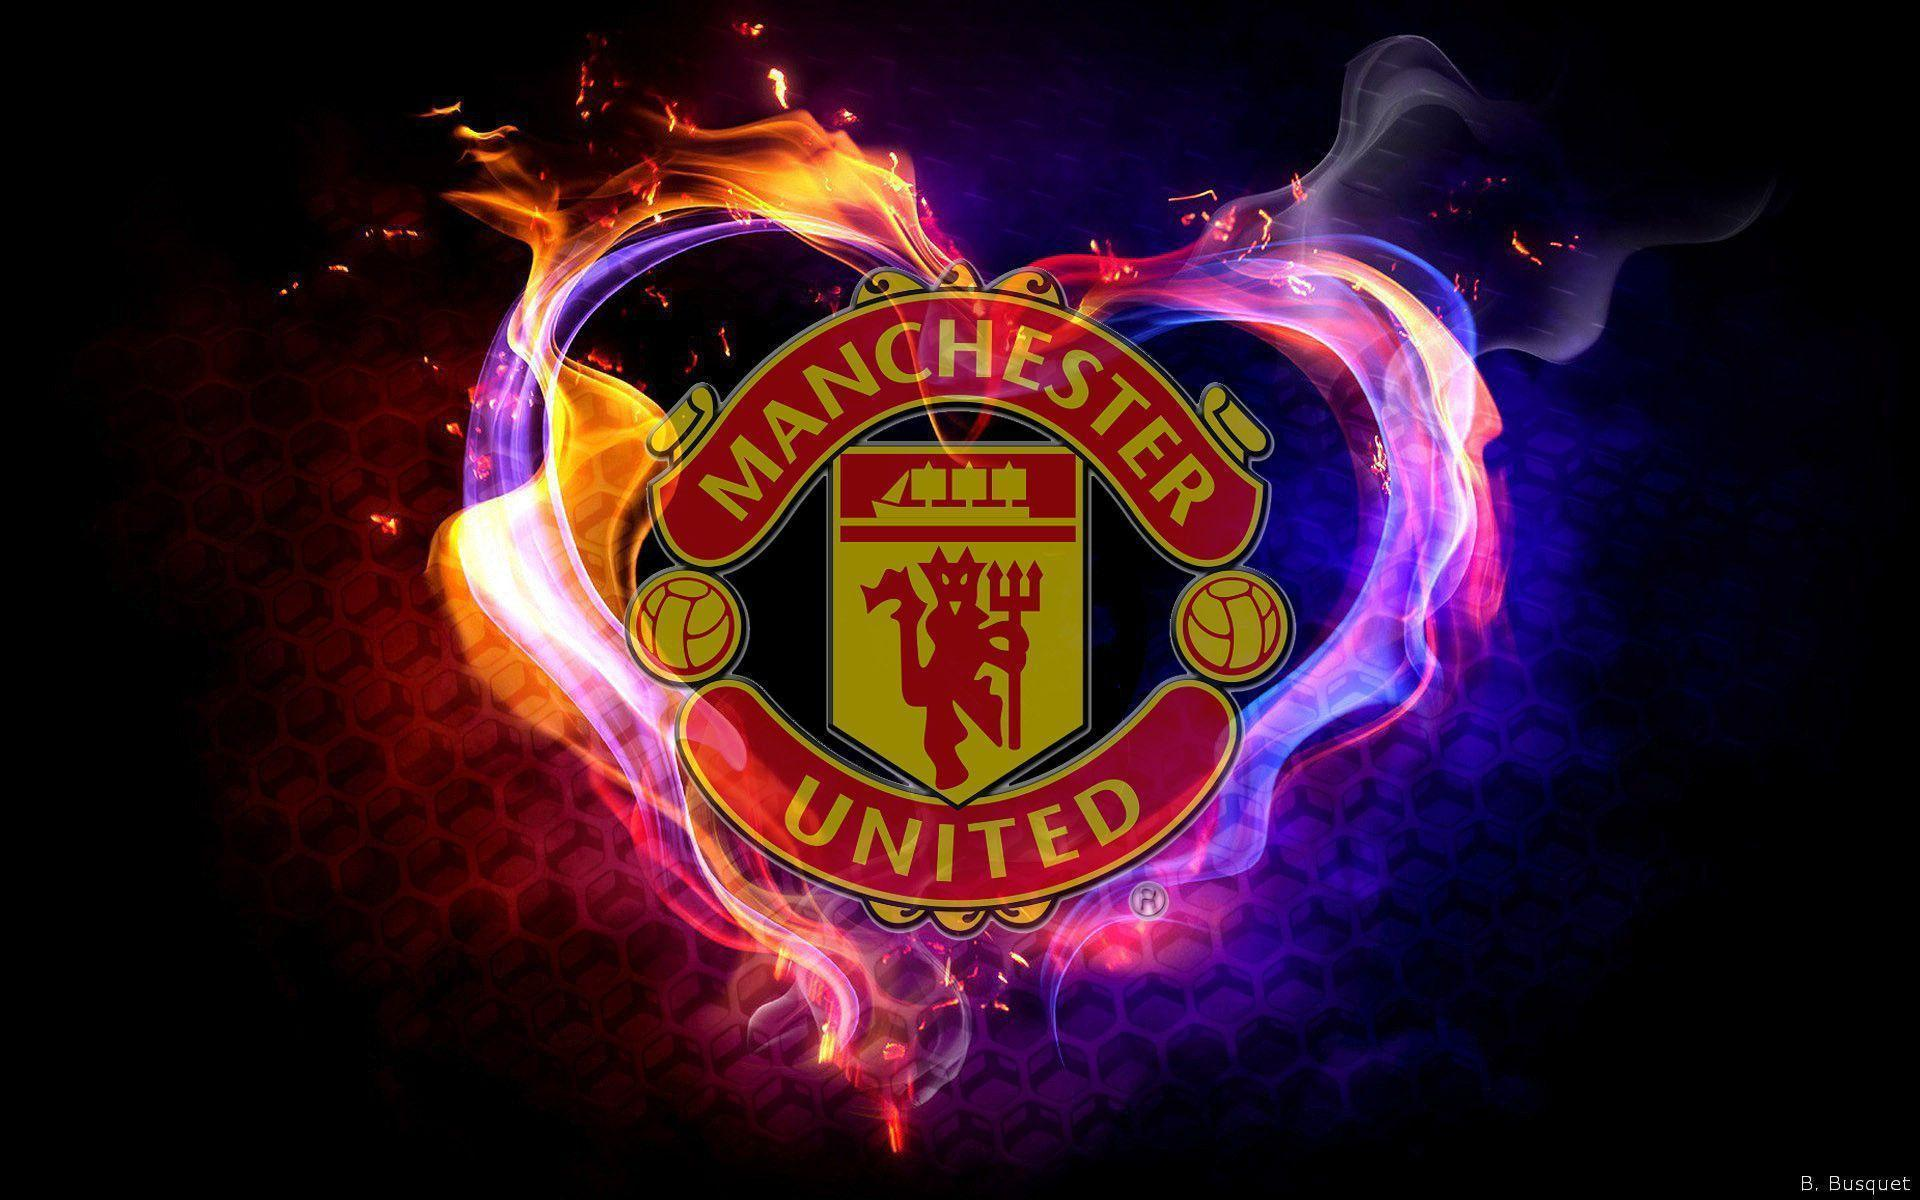 Manchester united wallpapers wallpaper cave - Cool man united wallpapers ...